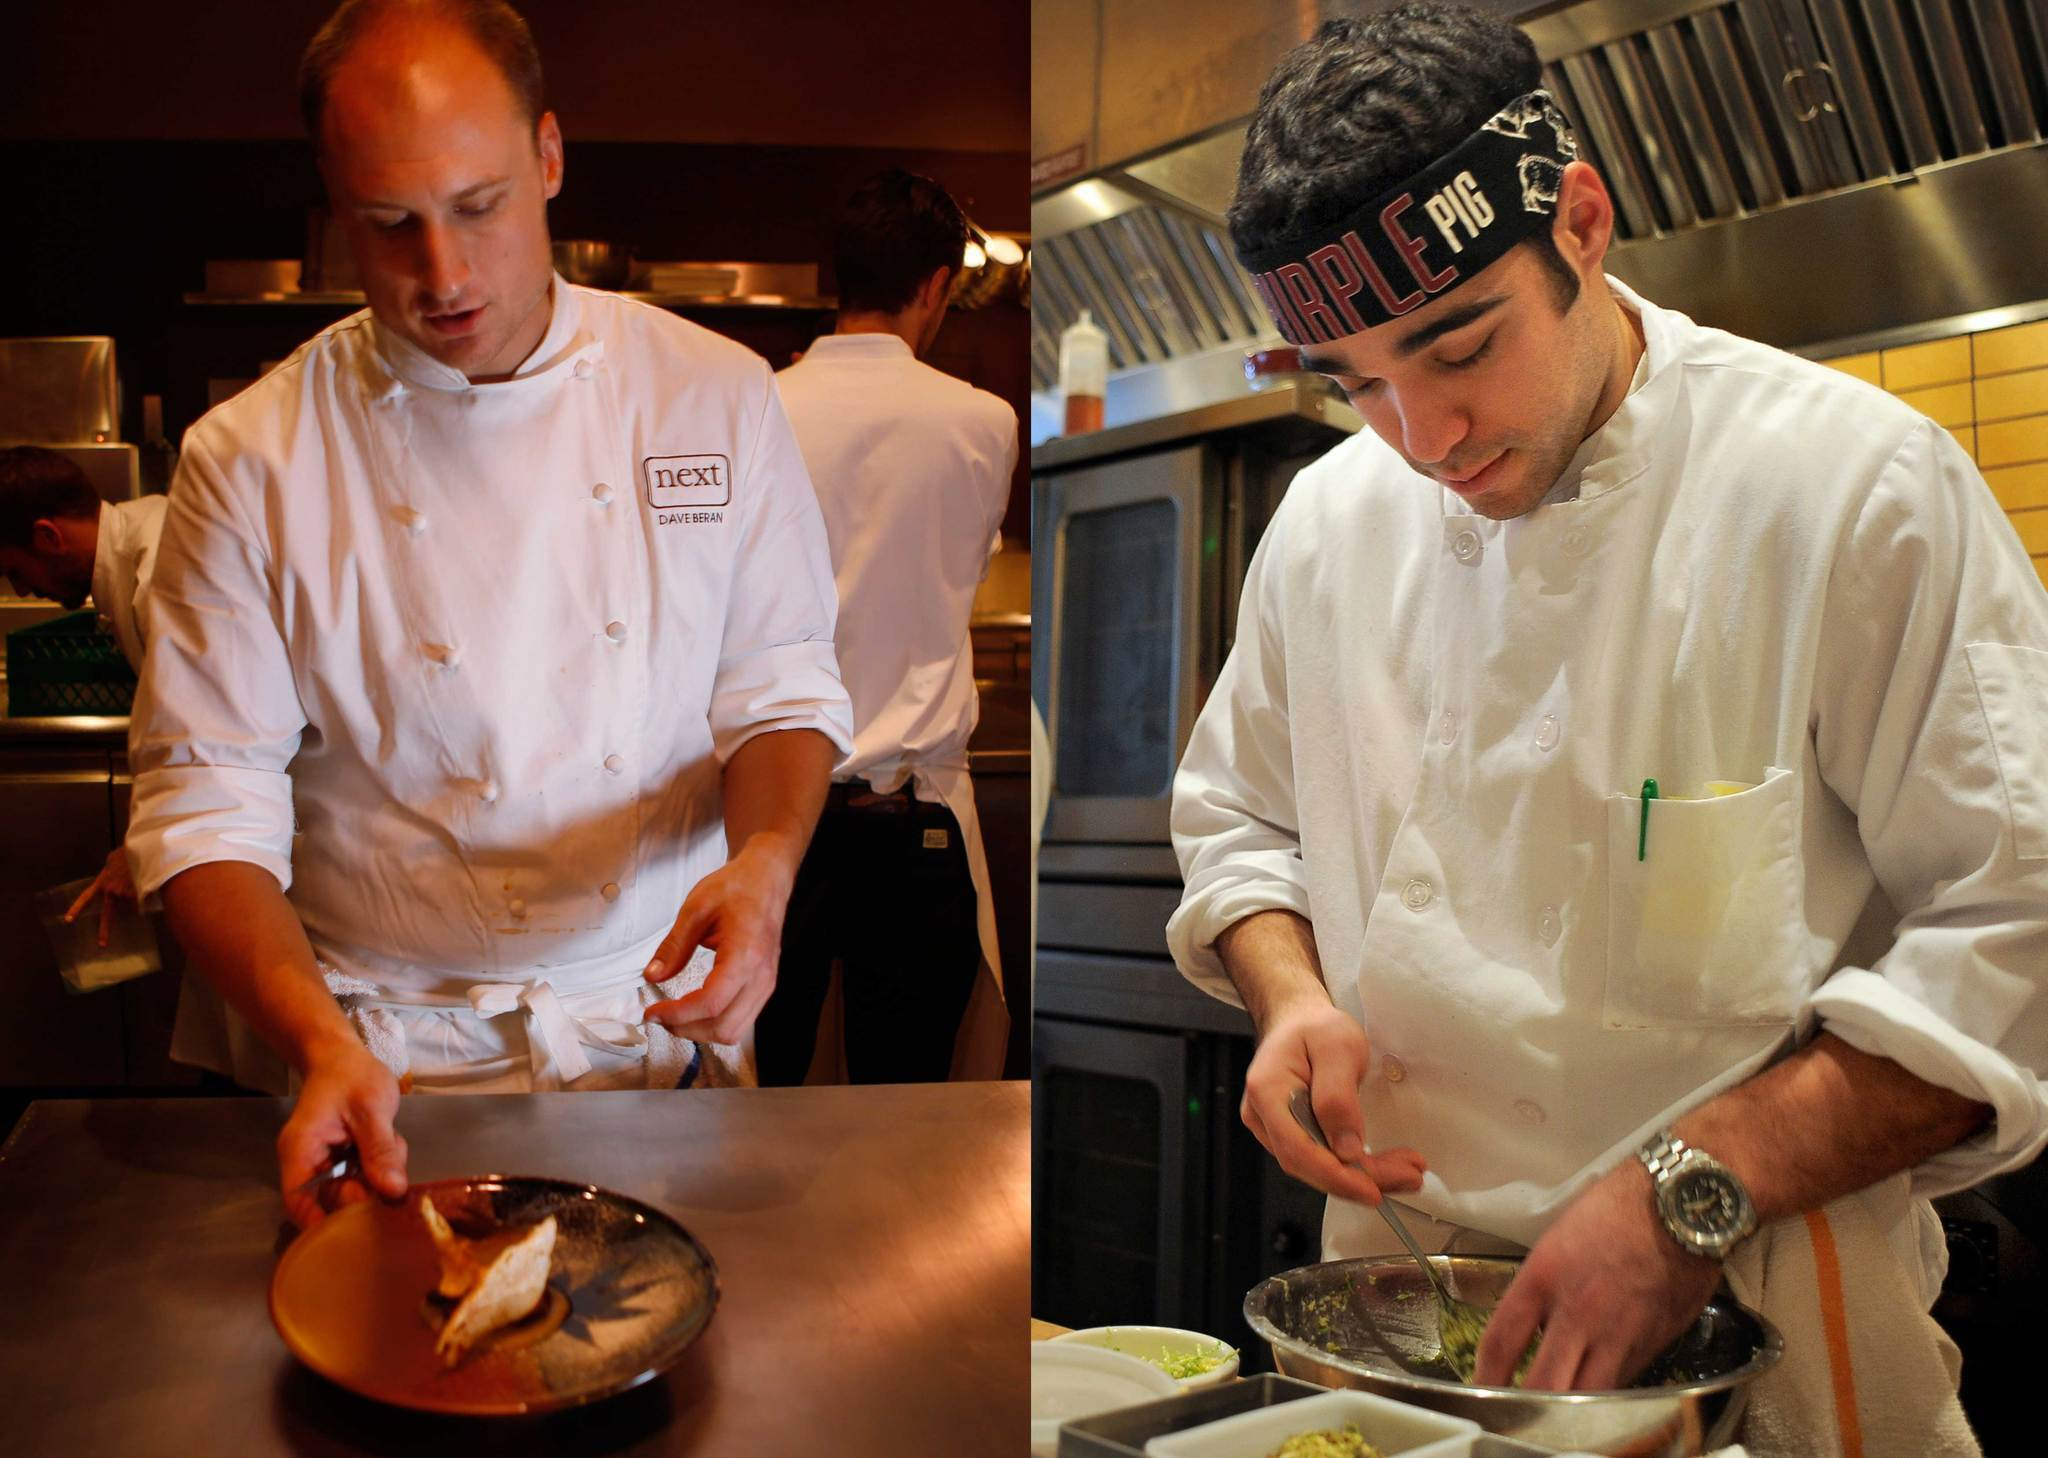 Pig (right) are winners in the 2014 James Beard Foundation Awards